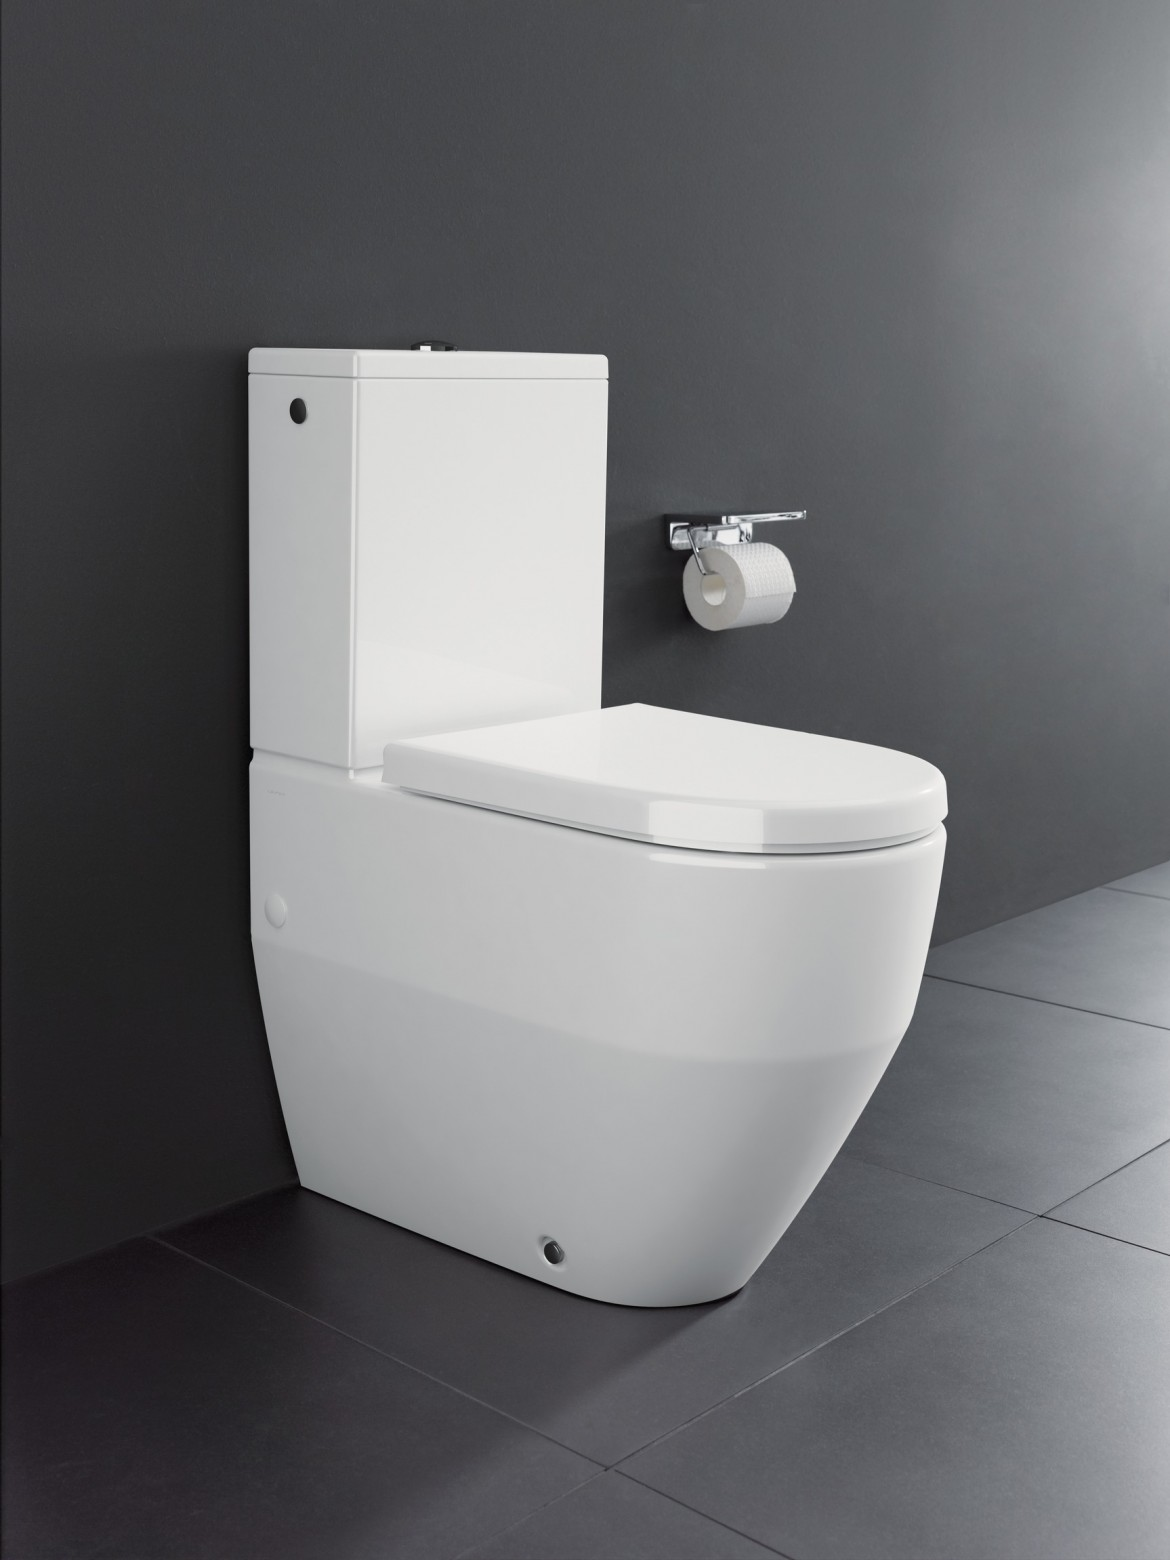 Laufen Pro 825952 fully BTW closed coupled wc pan